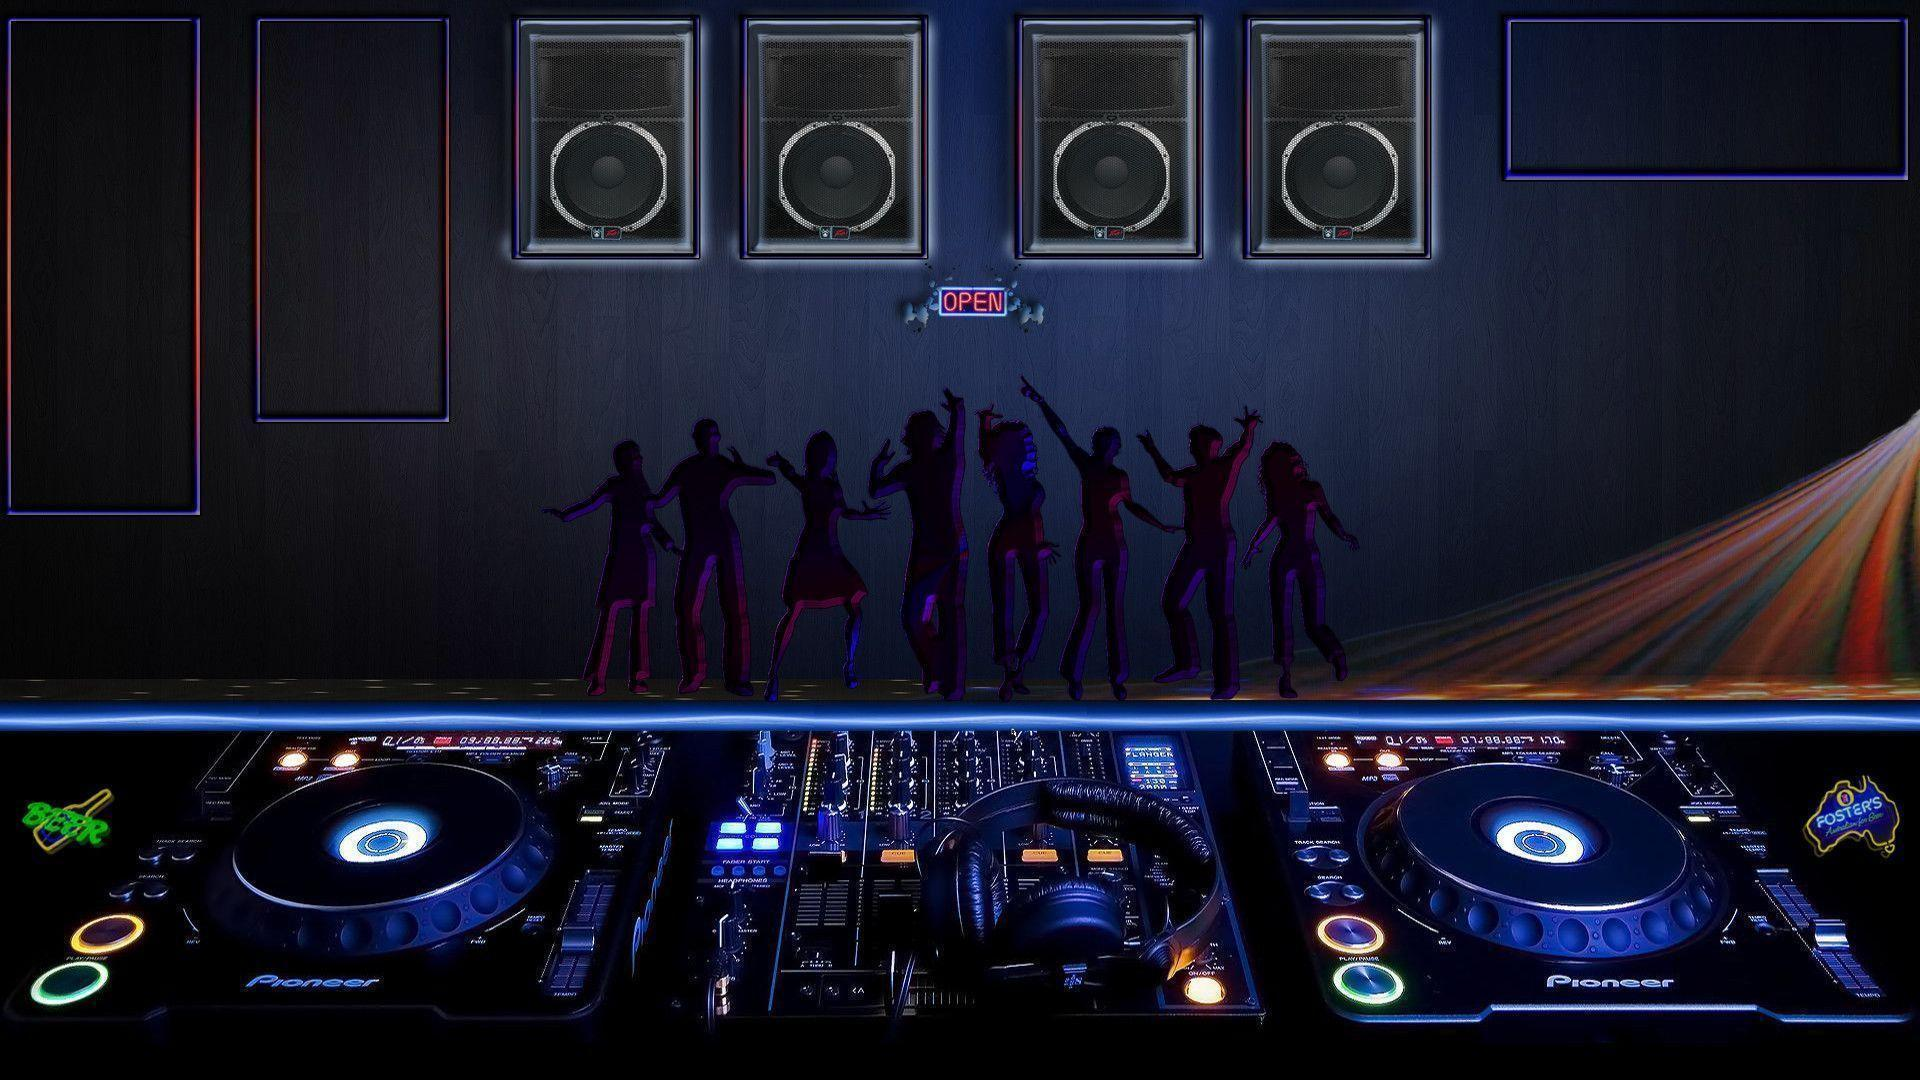 Image For > Hd Dj Backgrounds